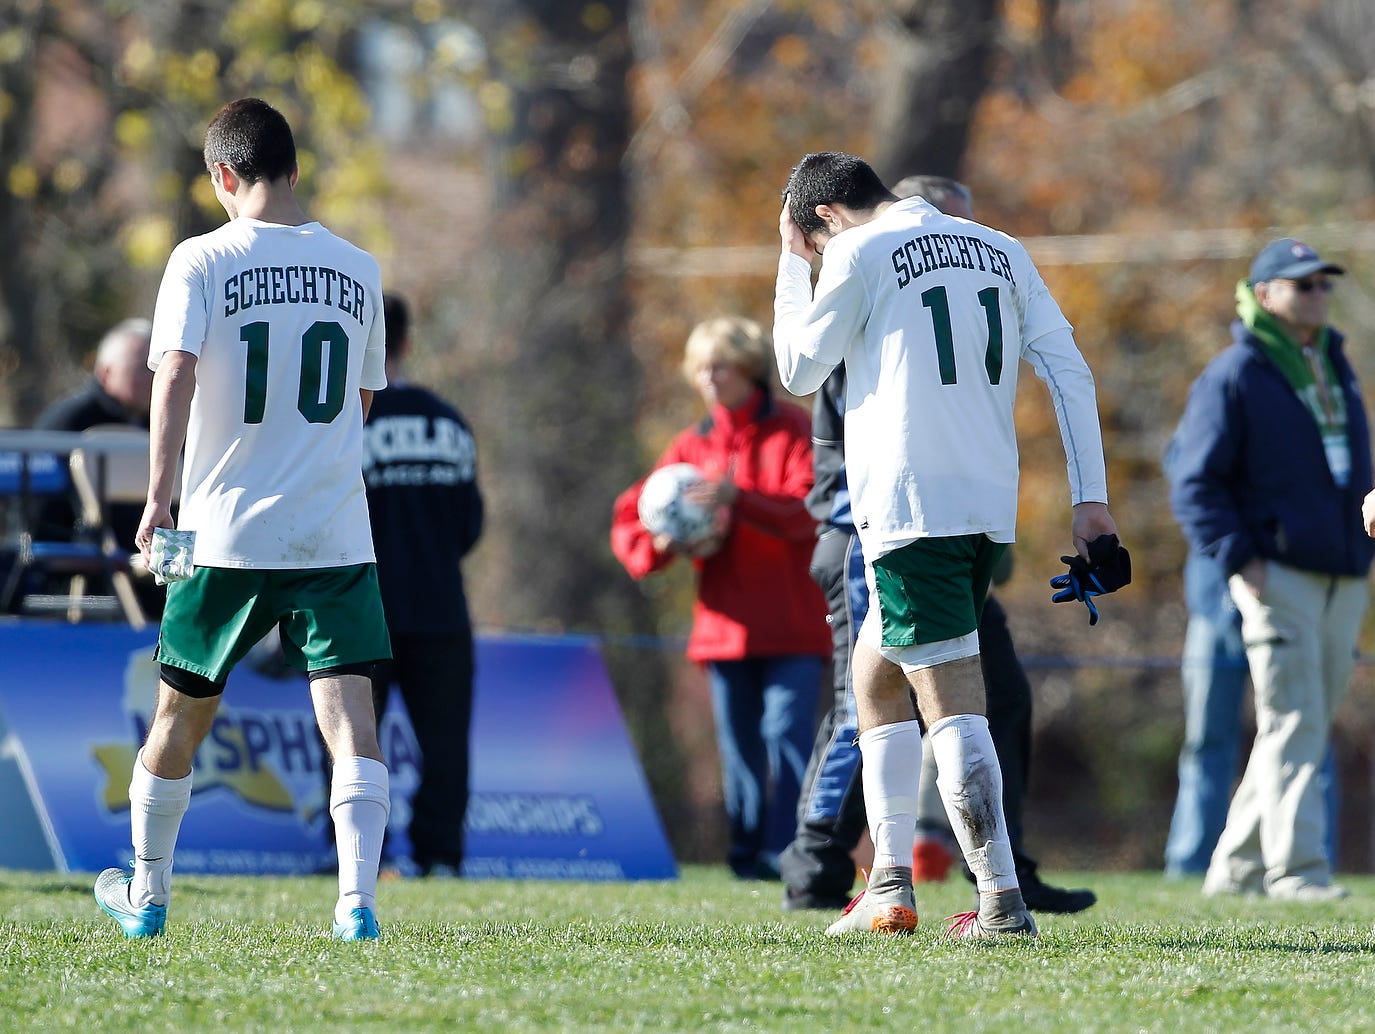 Solomon Schechter's Daniel Kohen (10), Jonathan Rand (11) and Jonathan Tolchinsky (7) walk off the field after their 9-1 loss to Notre Dame in the NYSPHSAA boys class C soccer final at Middletown High School on Sunday, Nov. 15, 2015.